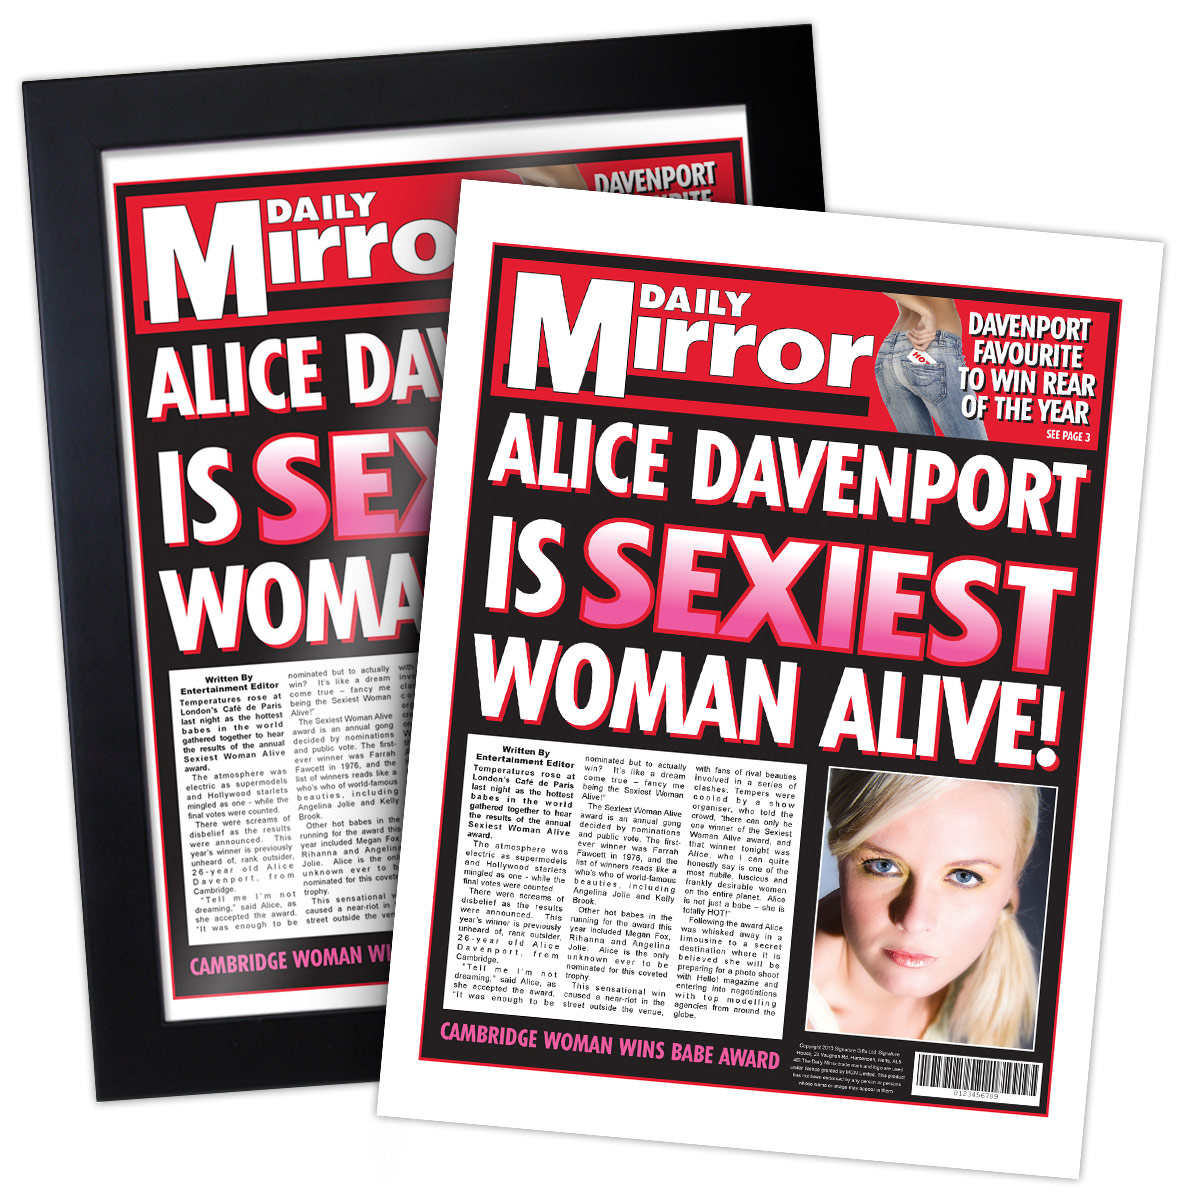 Sexiest Woman Alive Spoof Newspaper - 40th Birthday Gifts For Her